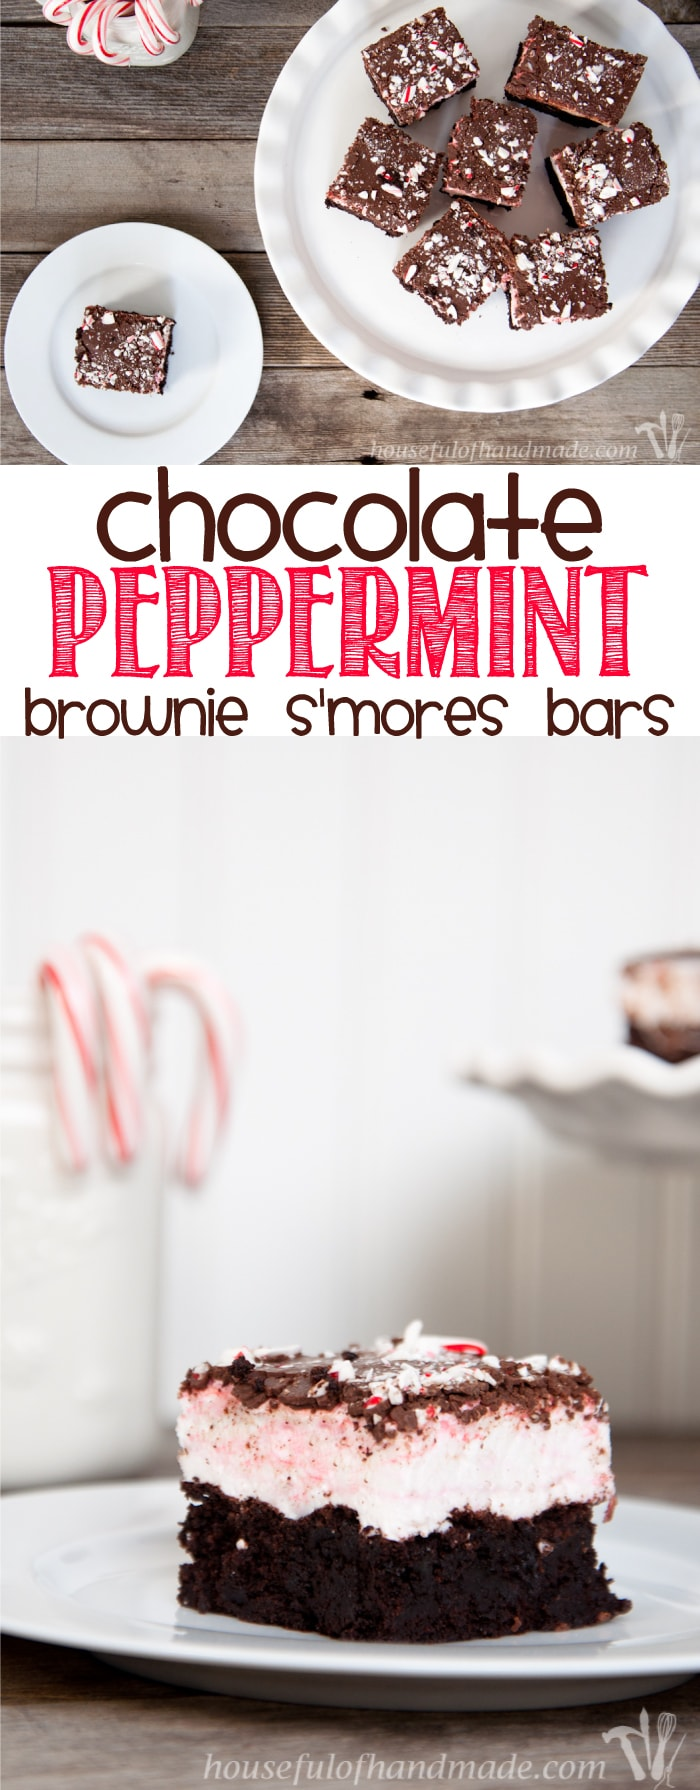 These bars are perfect for Christmas baking. The two best flavors of the season make these Chocolate Peppermint Brownie S'mores Bars delicious! | Housefulofhandmade.com